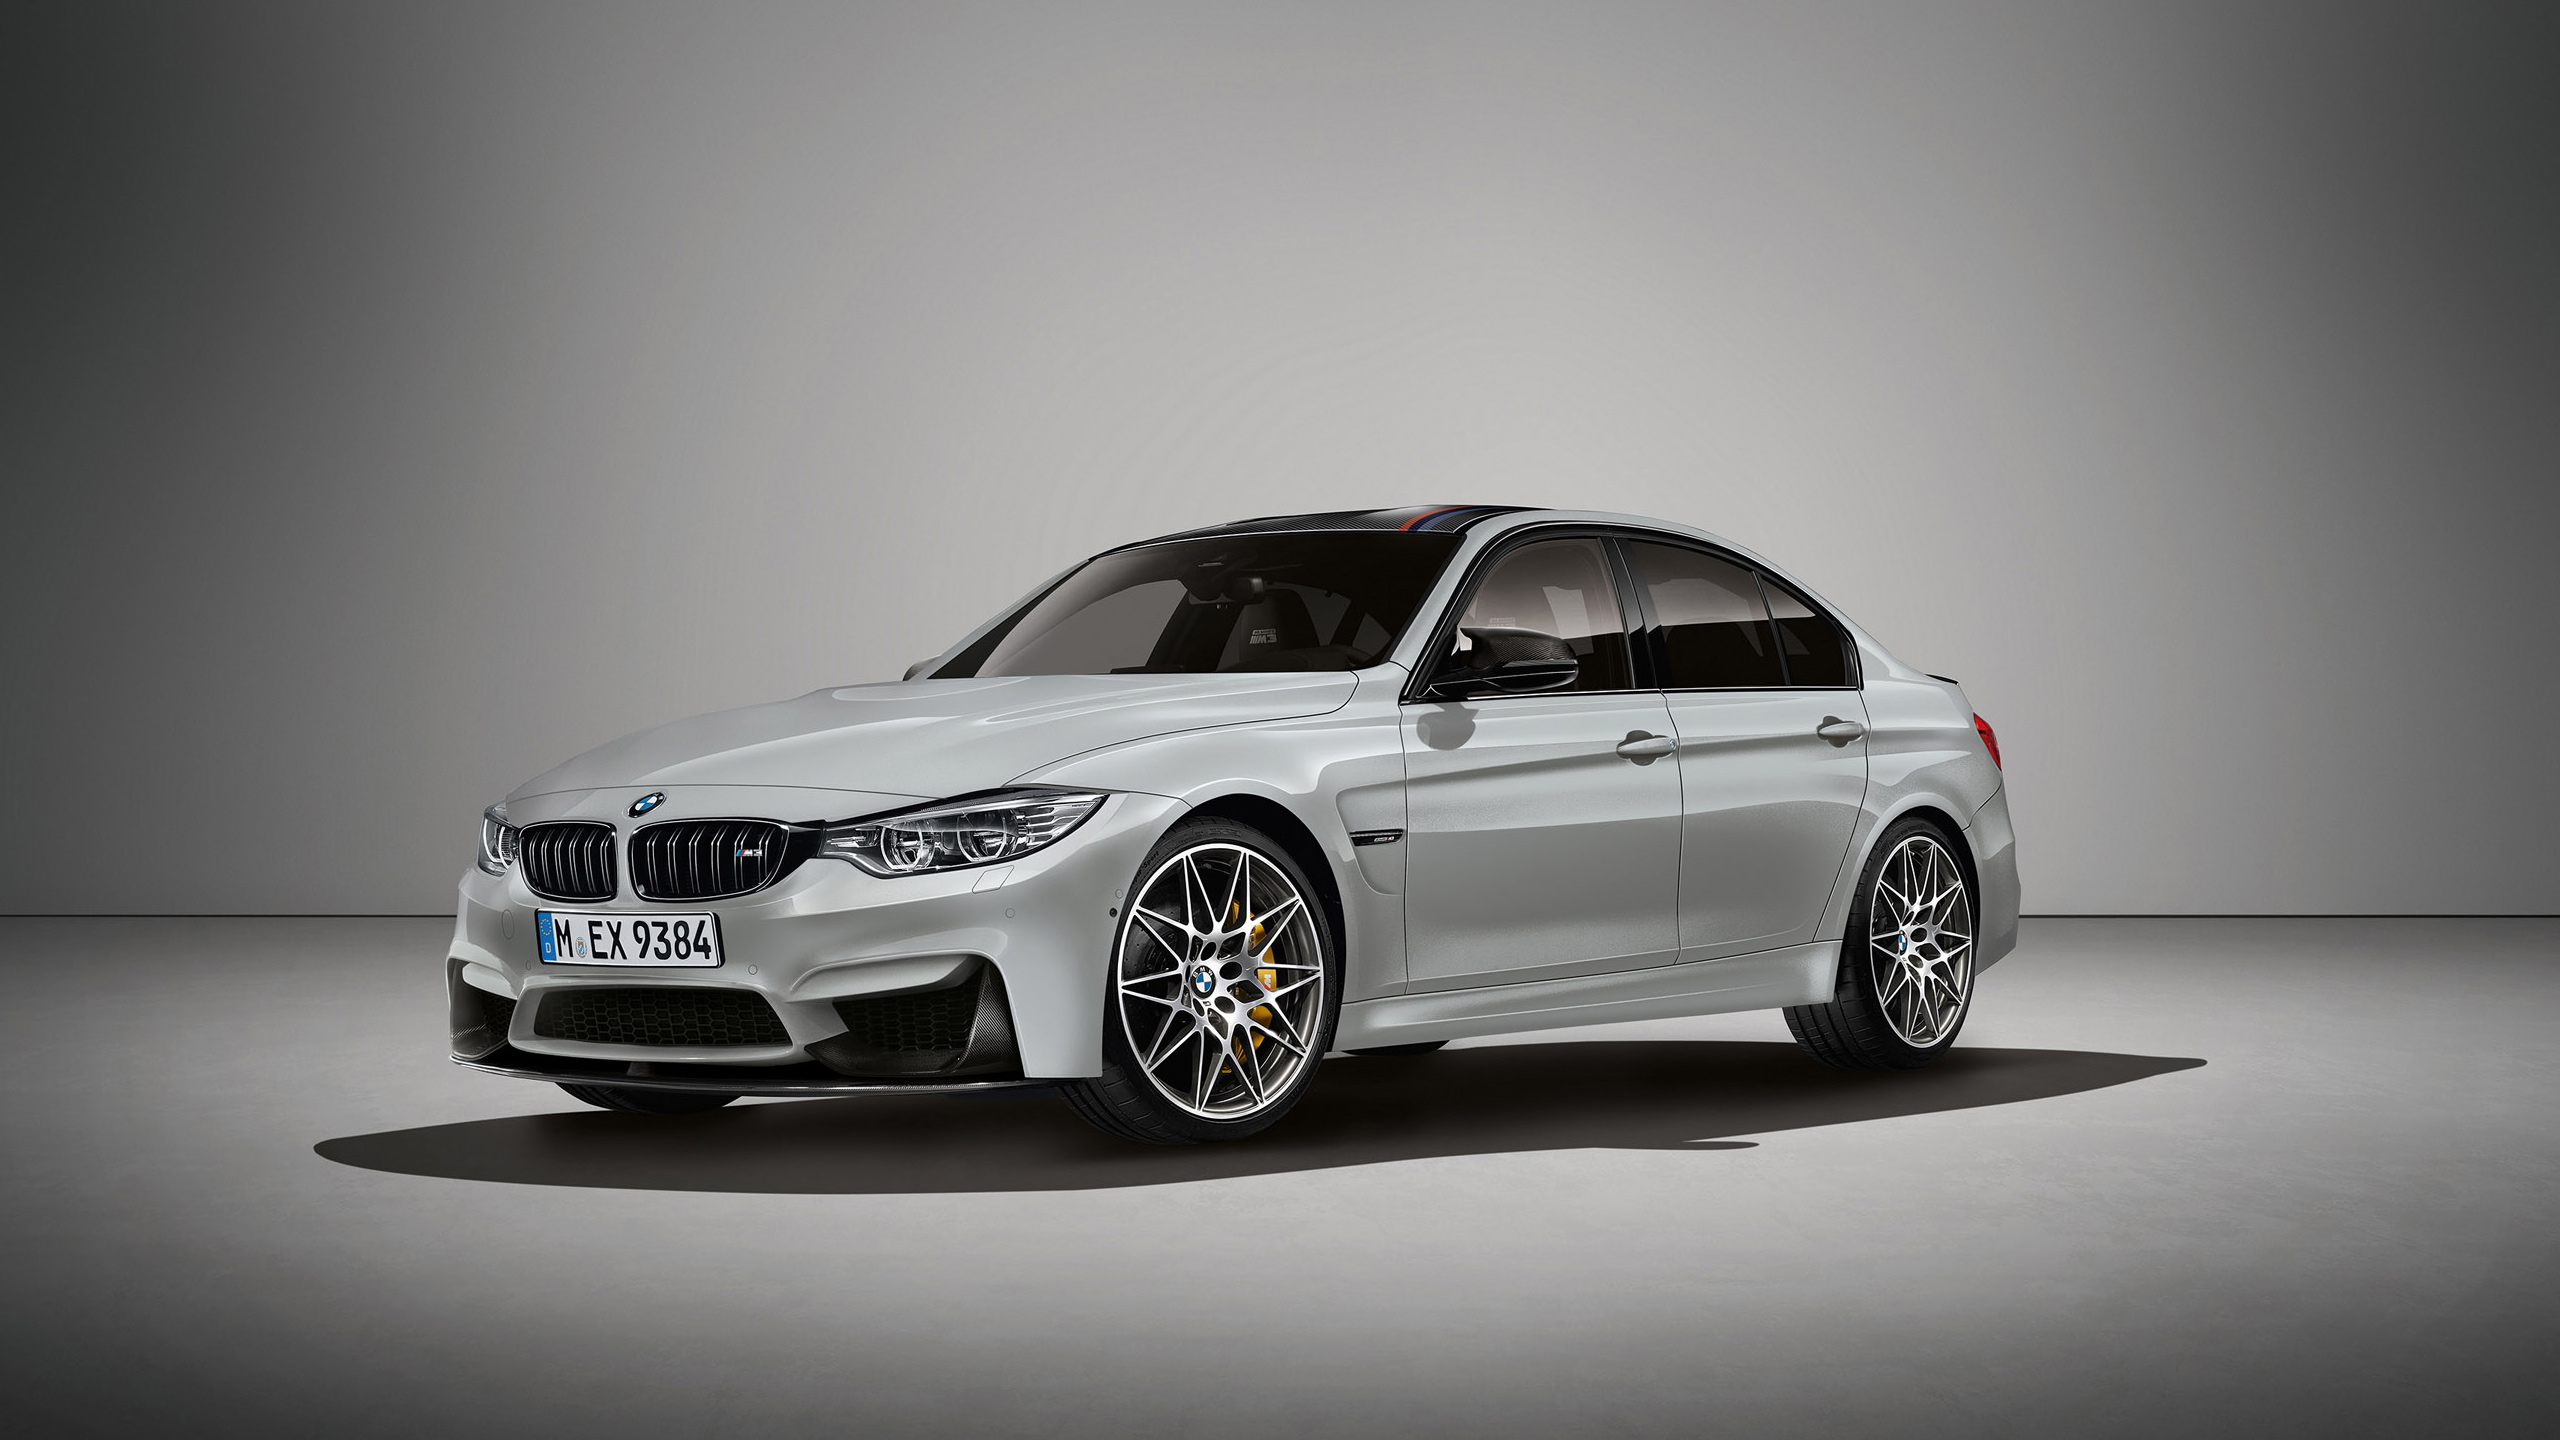 2016 bmw m3 30 jahre special edition wallpaper hd car wallpapers id 6582. Black Bedroom Furniture Sets. Home Design Ideas